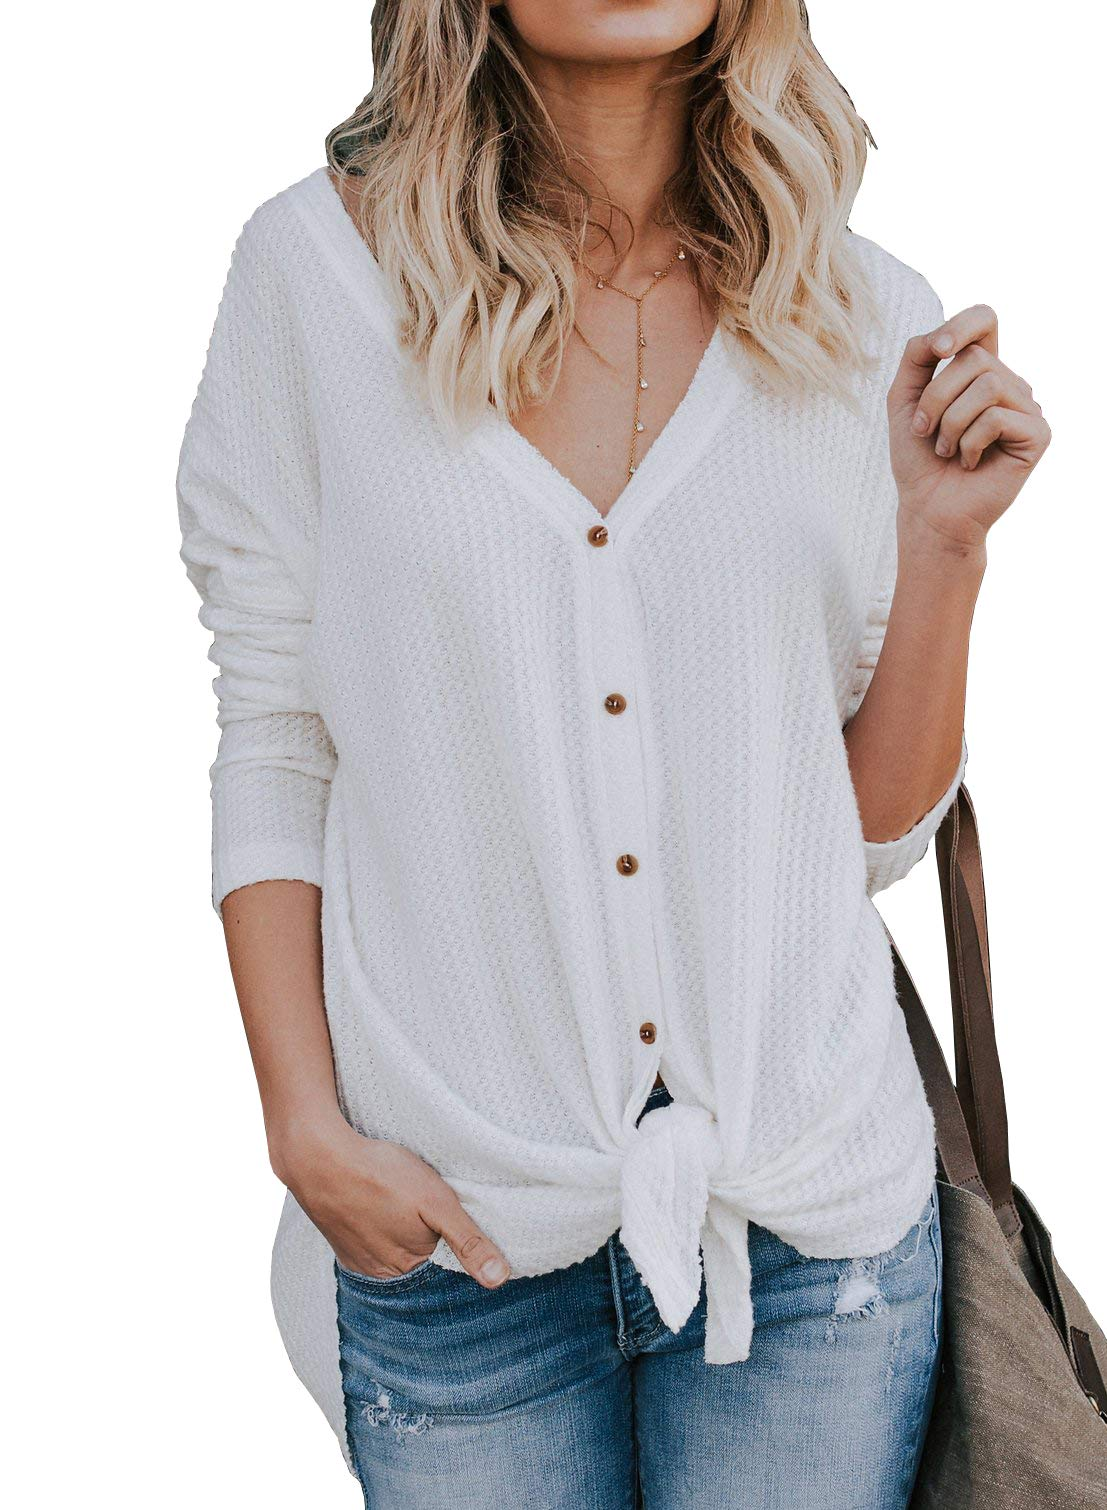 IWOLLENCE Womens Loose Henley Blouse Bat Wing Long Sleeve Button Down T Shirts Tie Front Knot Tops White M